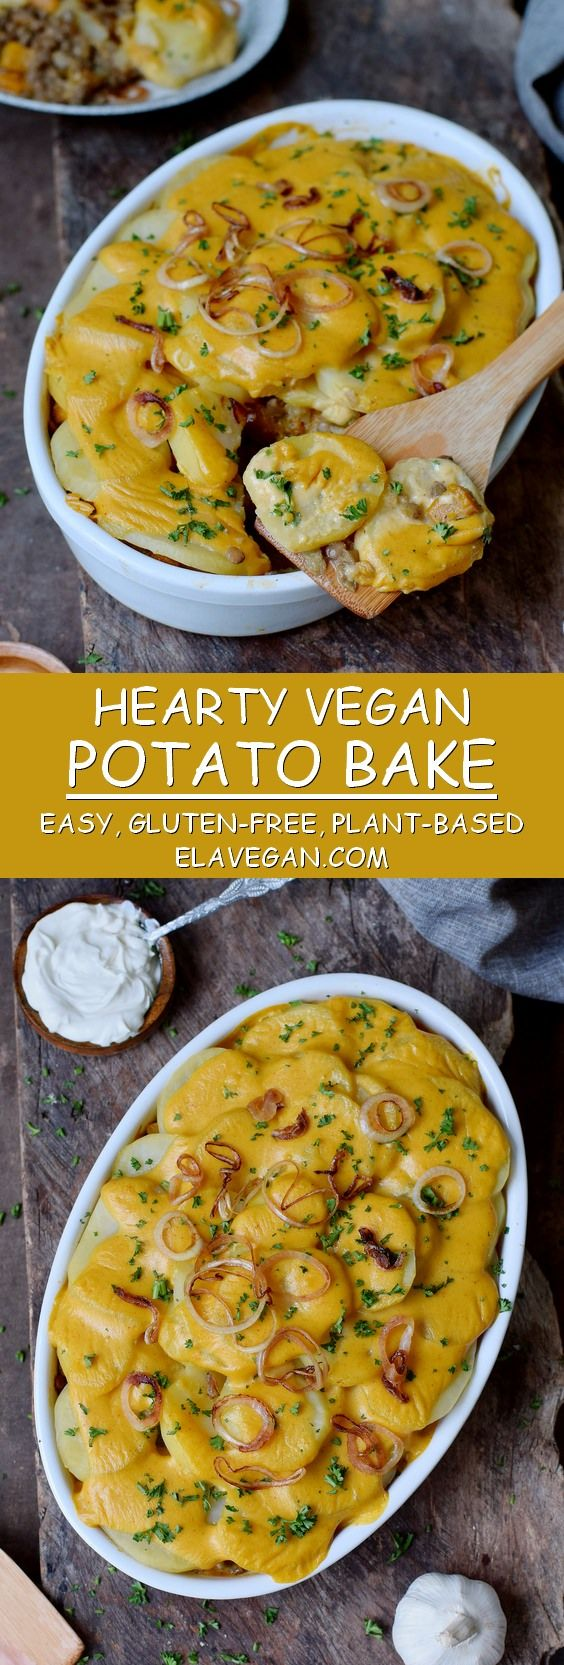 This hearty vegan potato bake with pumpkin and lentils is a great fall recipe. It's a wonderful comfort food and perfect for dinner or lunch. The vegan potato casserole is plant-based, gluten-free and easy to make! #vegan #glutenfree #potatobake #casserole #vegandinner | elavegan.com #fallrecipesdinner